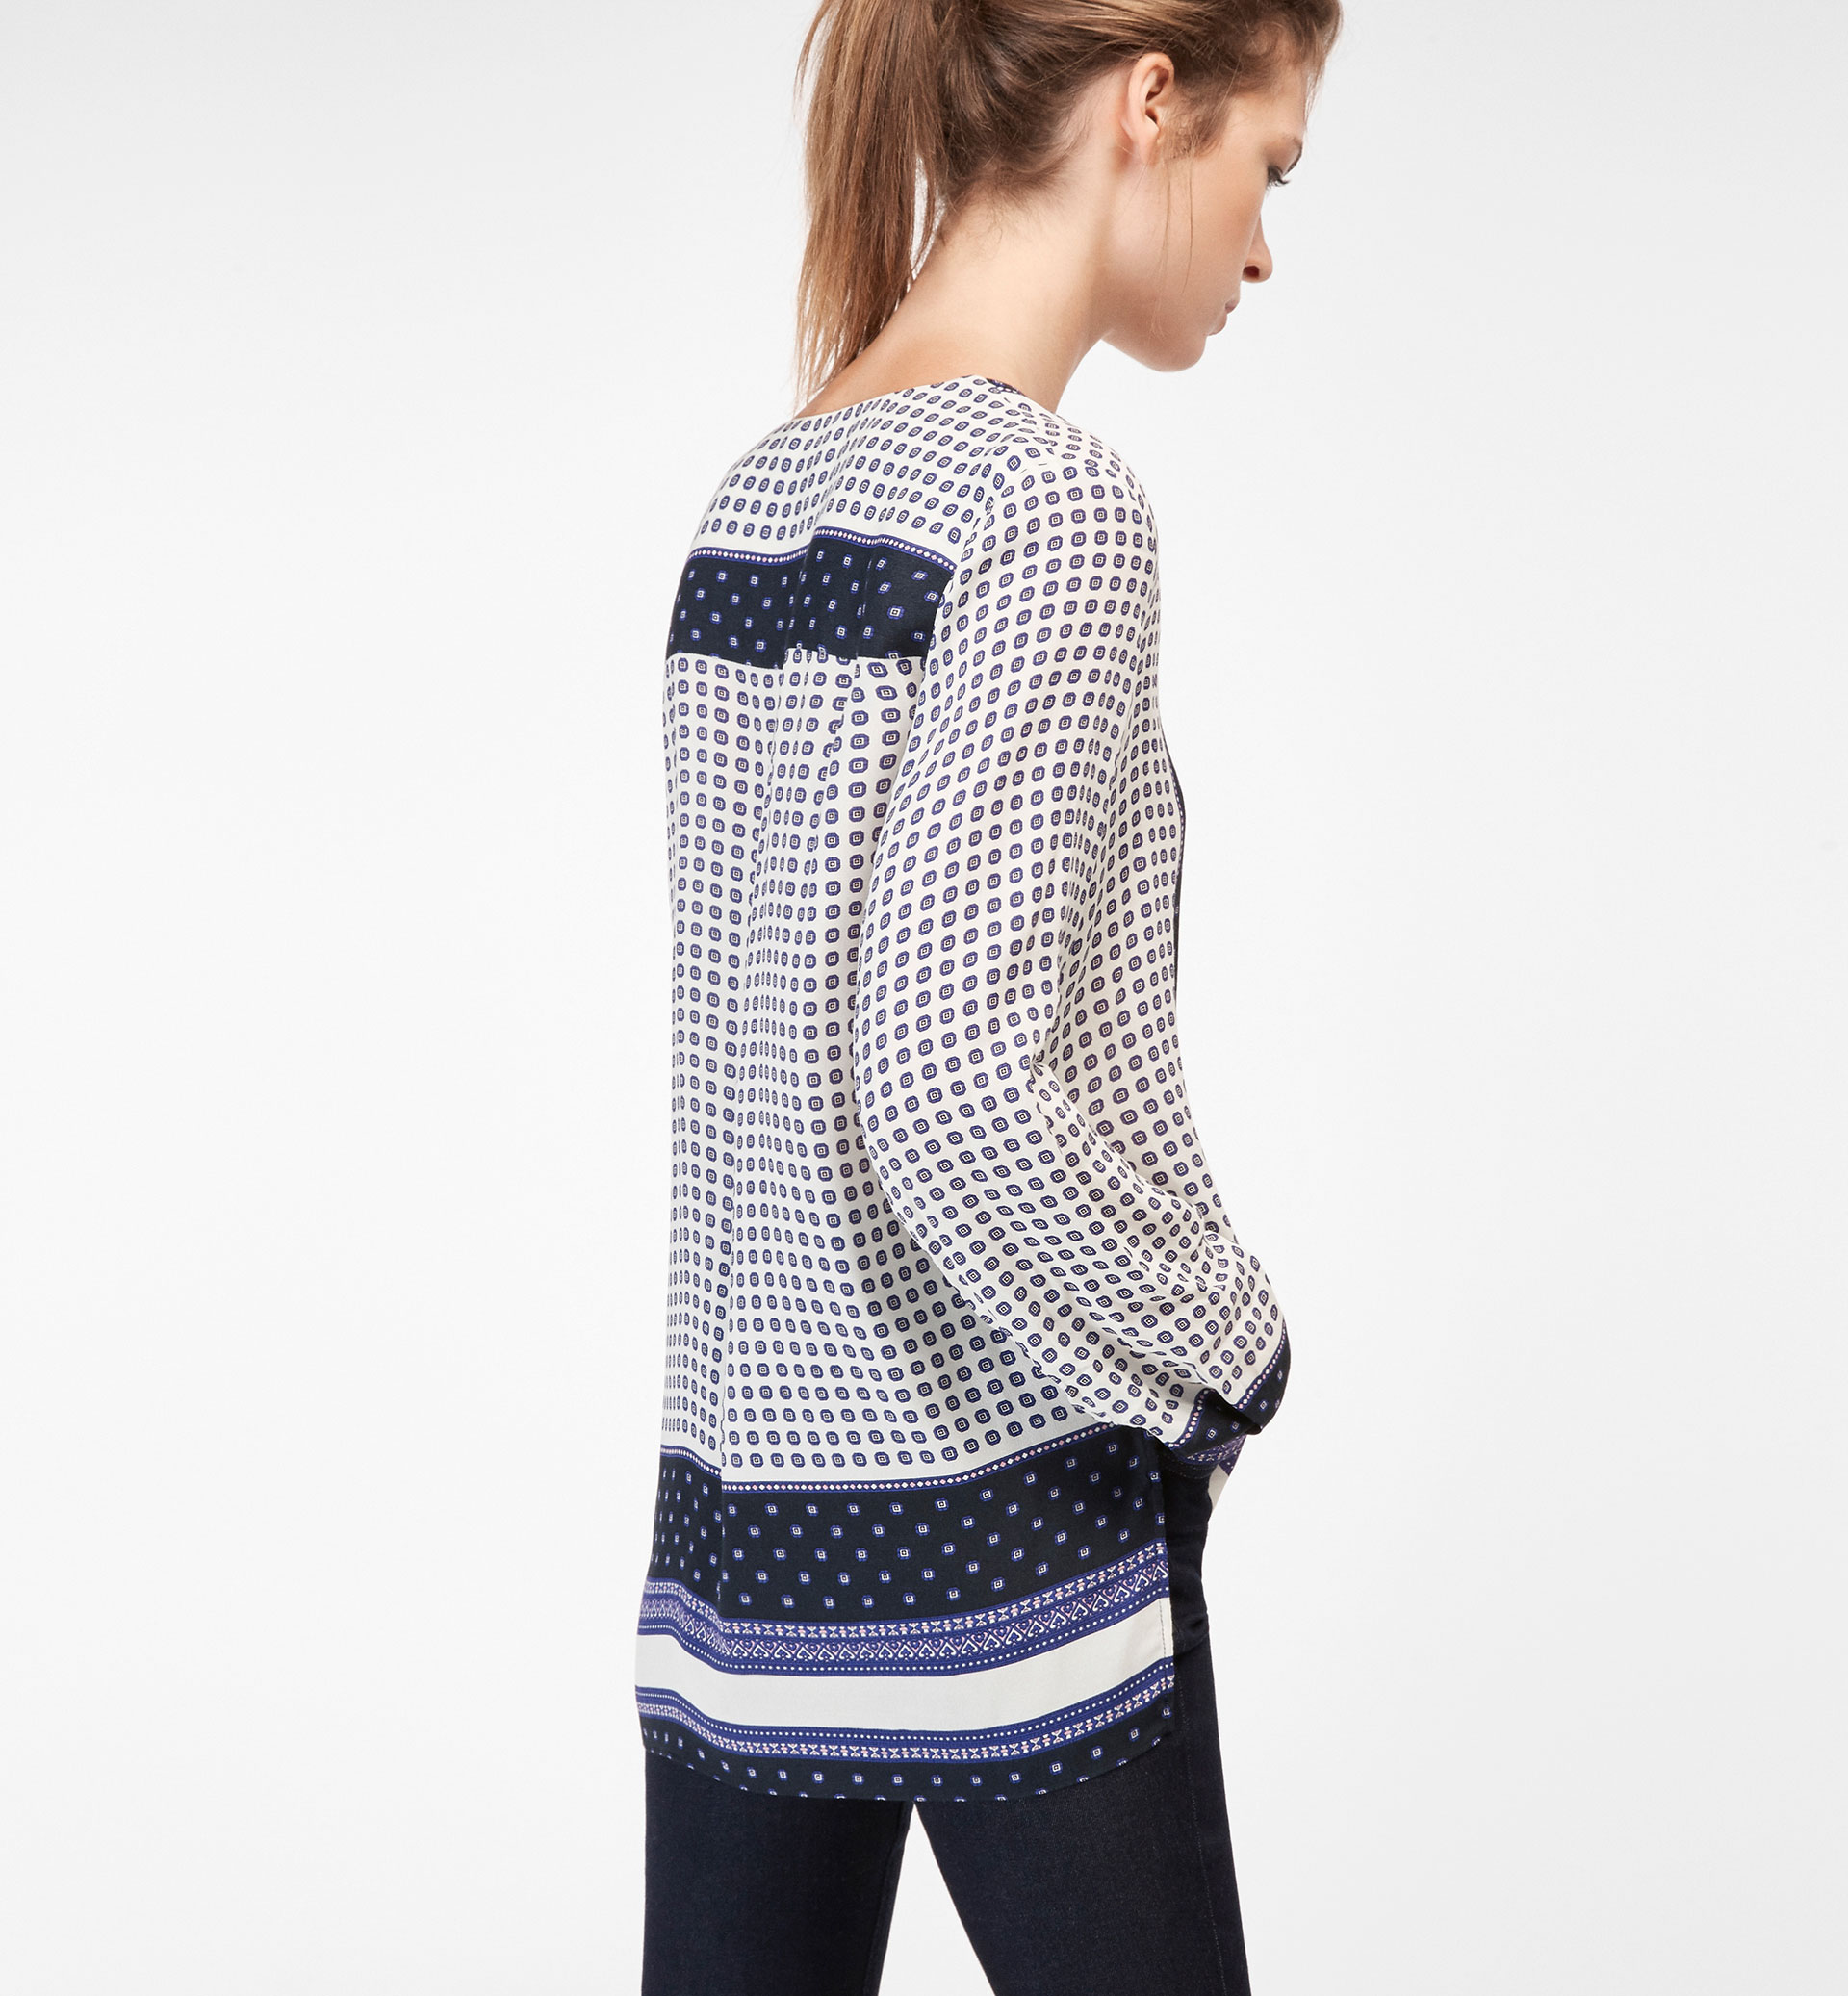 POSITIONAL PRINT SHIRT WITH A ZIP DETAIL